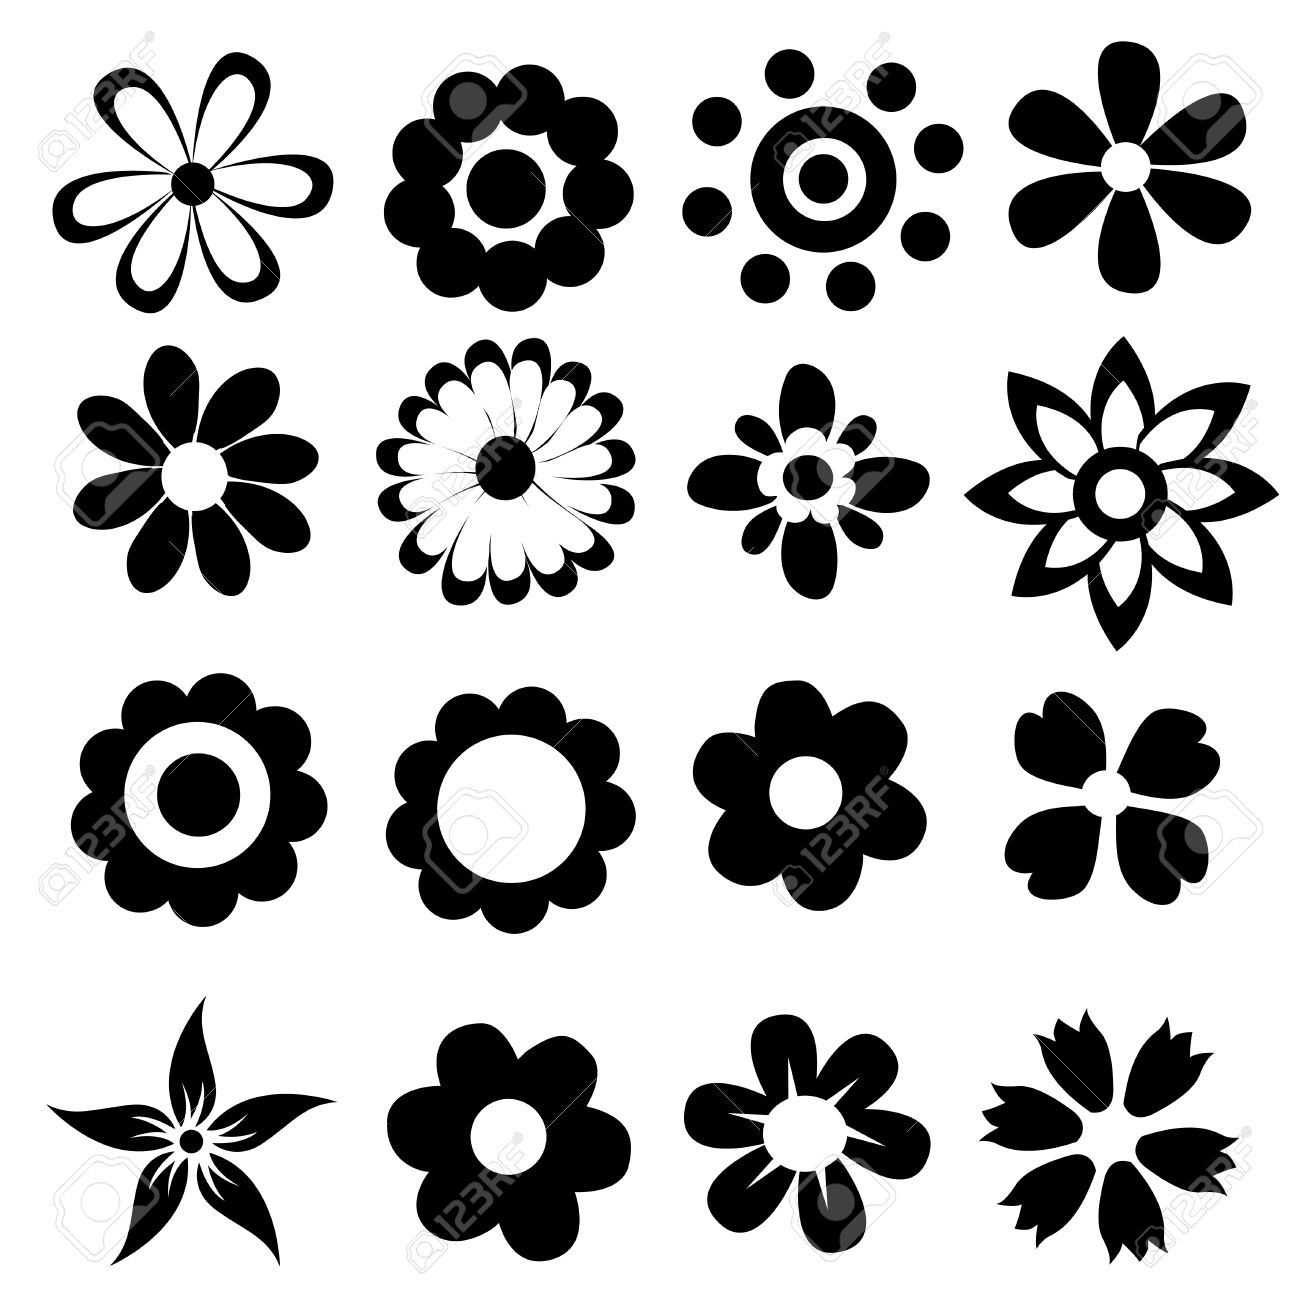 silhouettes of simple vector flowers royalty free cliparts vectors rh 123rf com simple vector drawing simple vector graphics